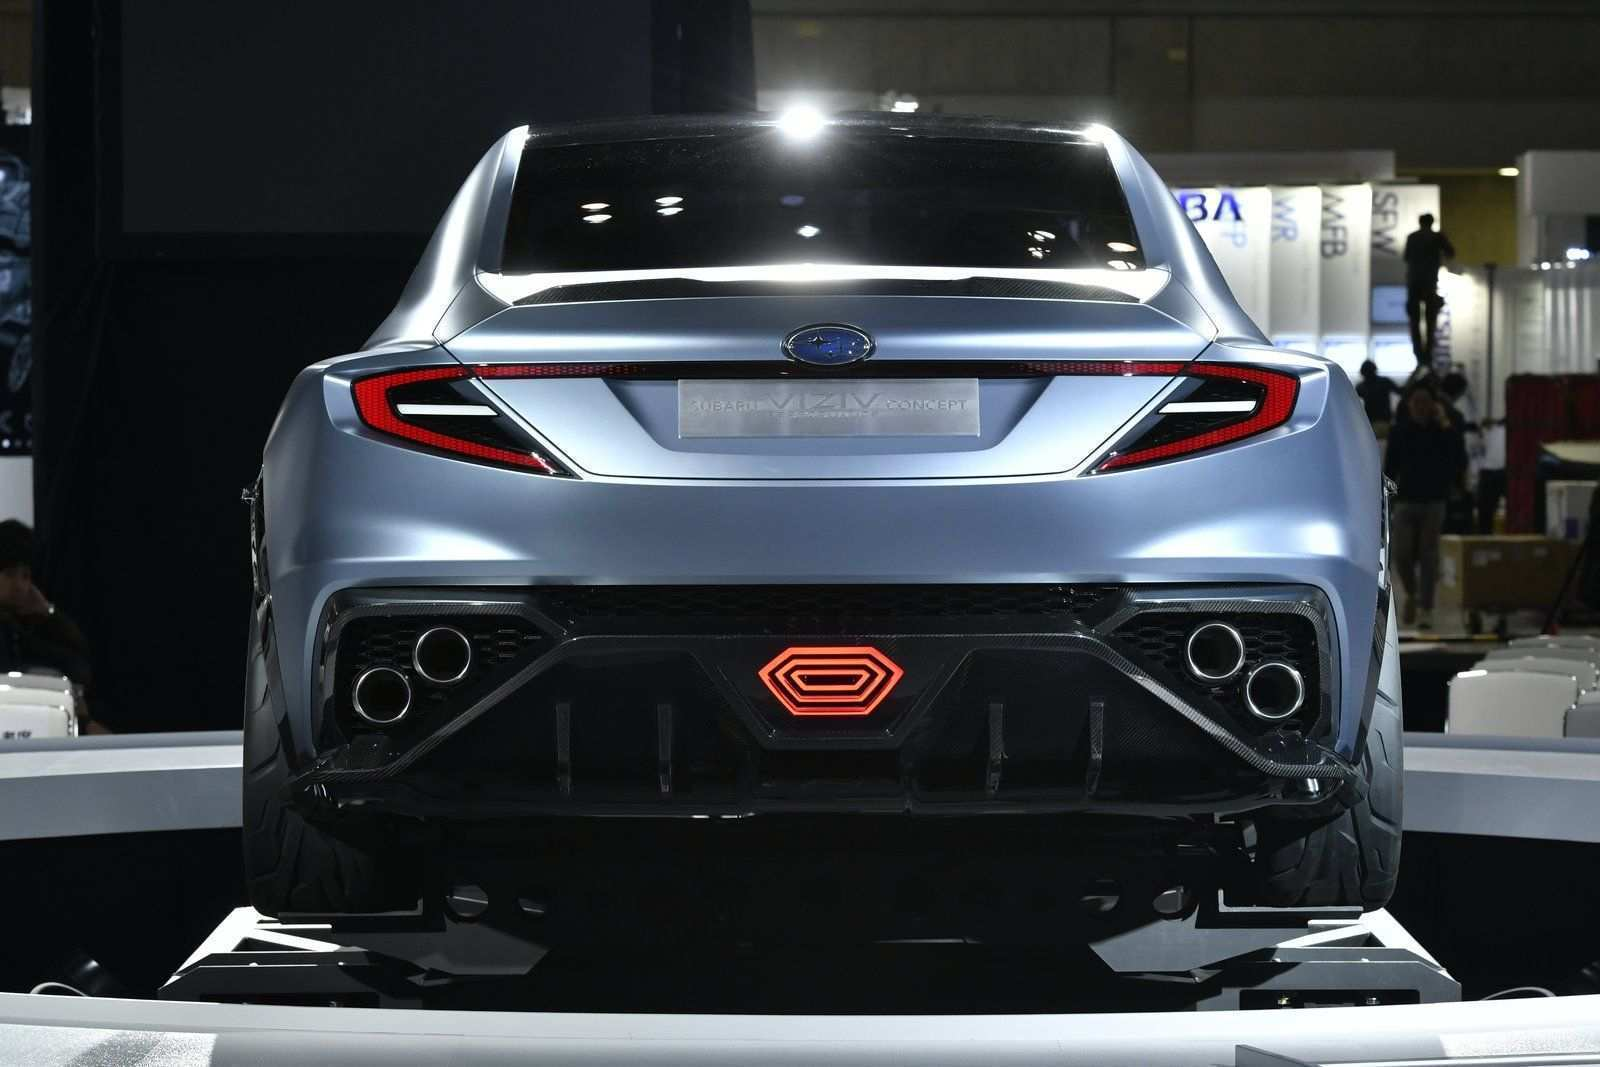 23 All New 2020 Subaru Wrx Exterior Date History for 2020 Subaru Wrx Exterior Date